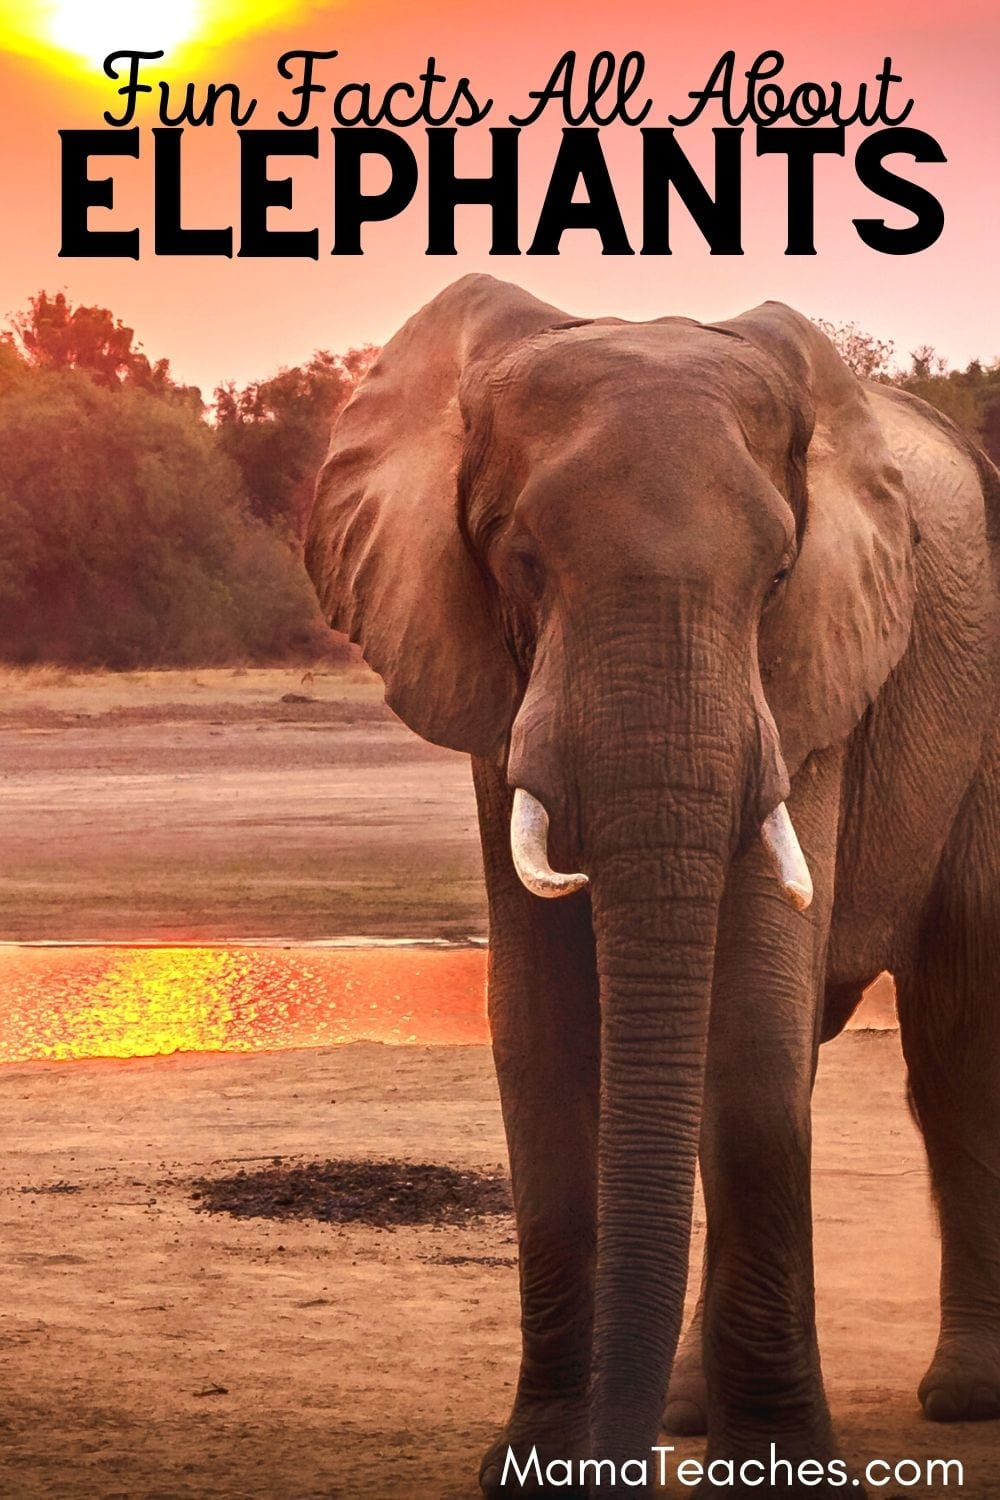 Fun Facts All About Elephants for Kids